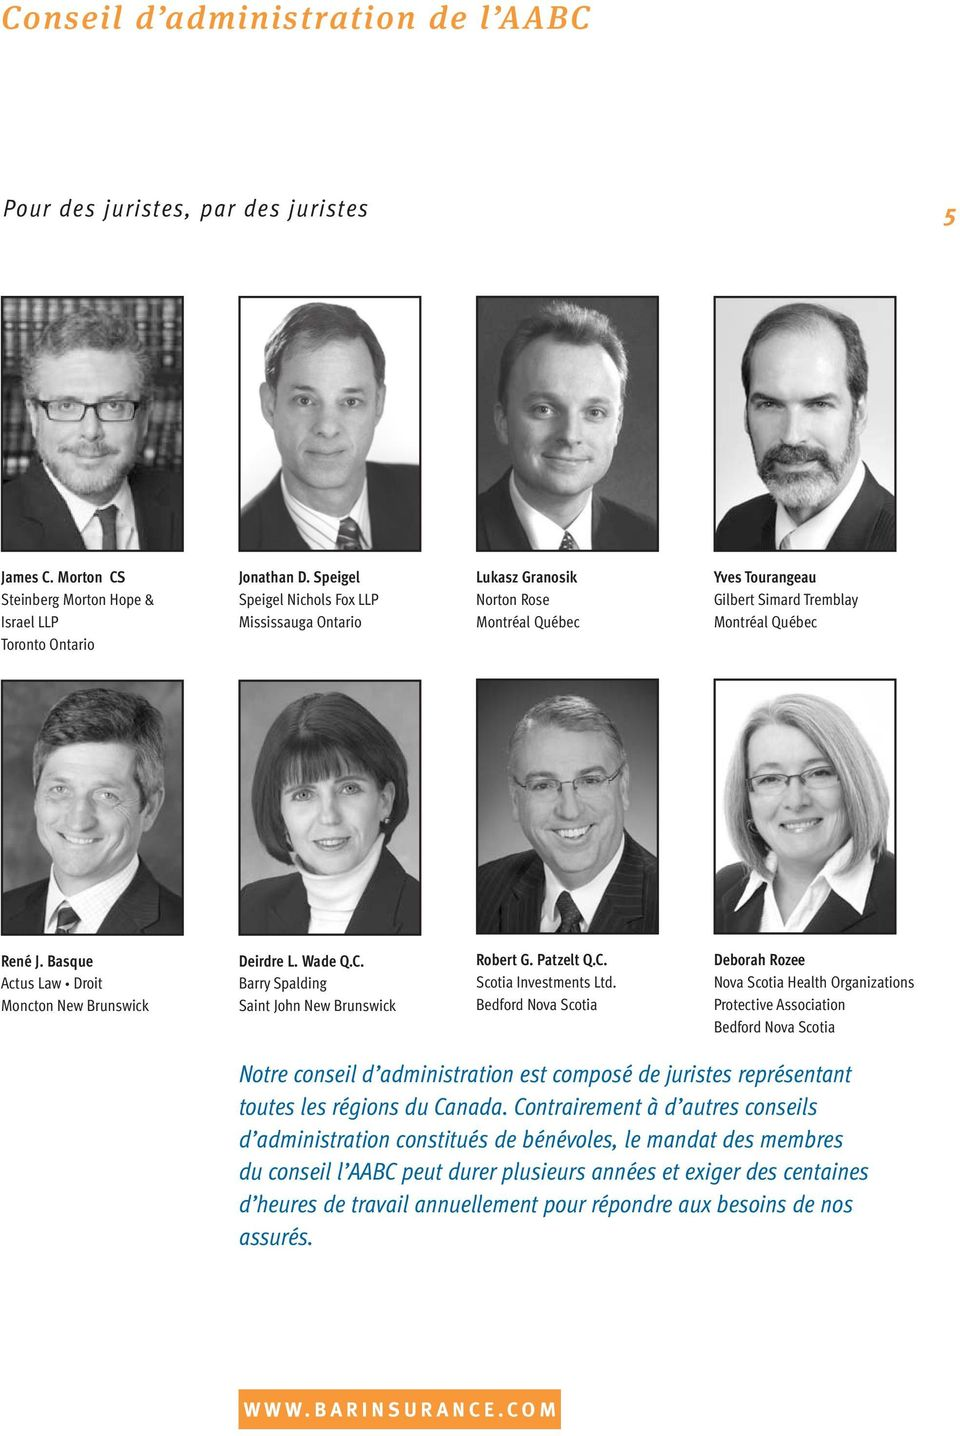 Basque Actus Law Droit Moncton New Brunswick Deirdre L. Wade Q.C. Barry Spalding Saint John New Brunswick Robert G. Patzelt Q.C. Scotia Investments Ltd.